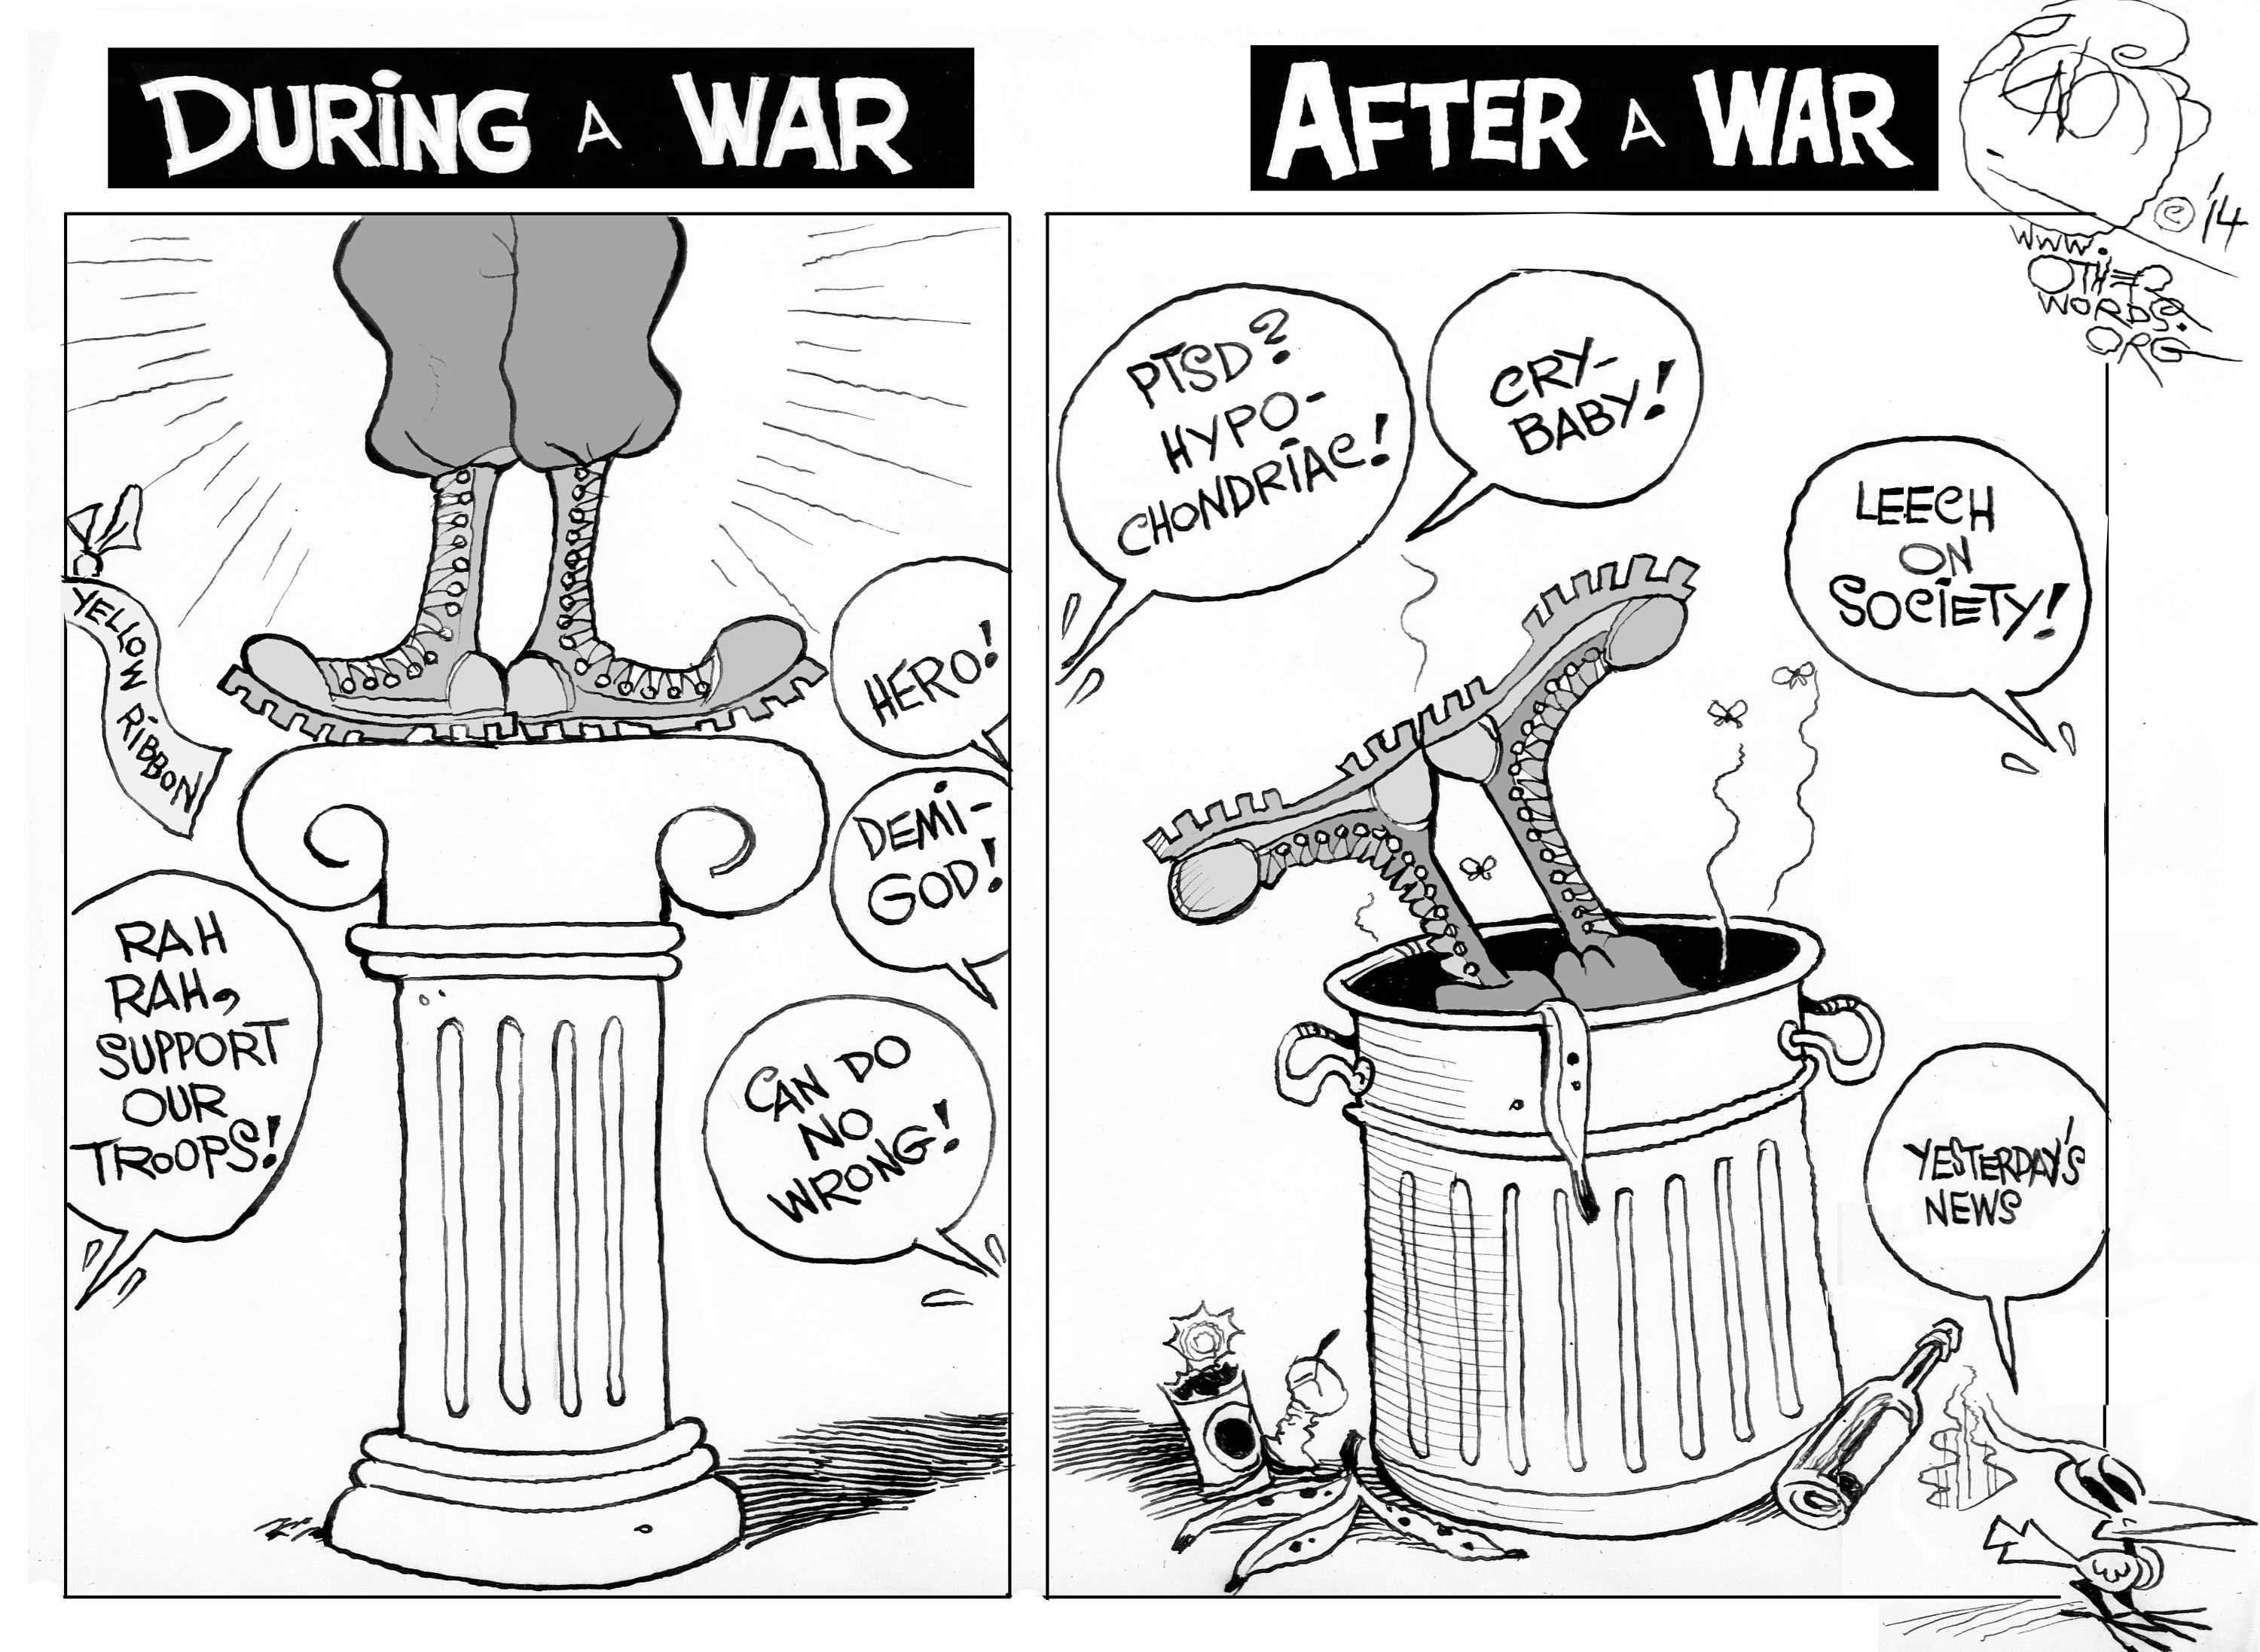 Before and After a War